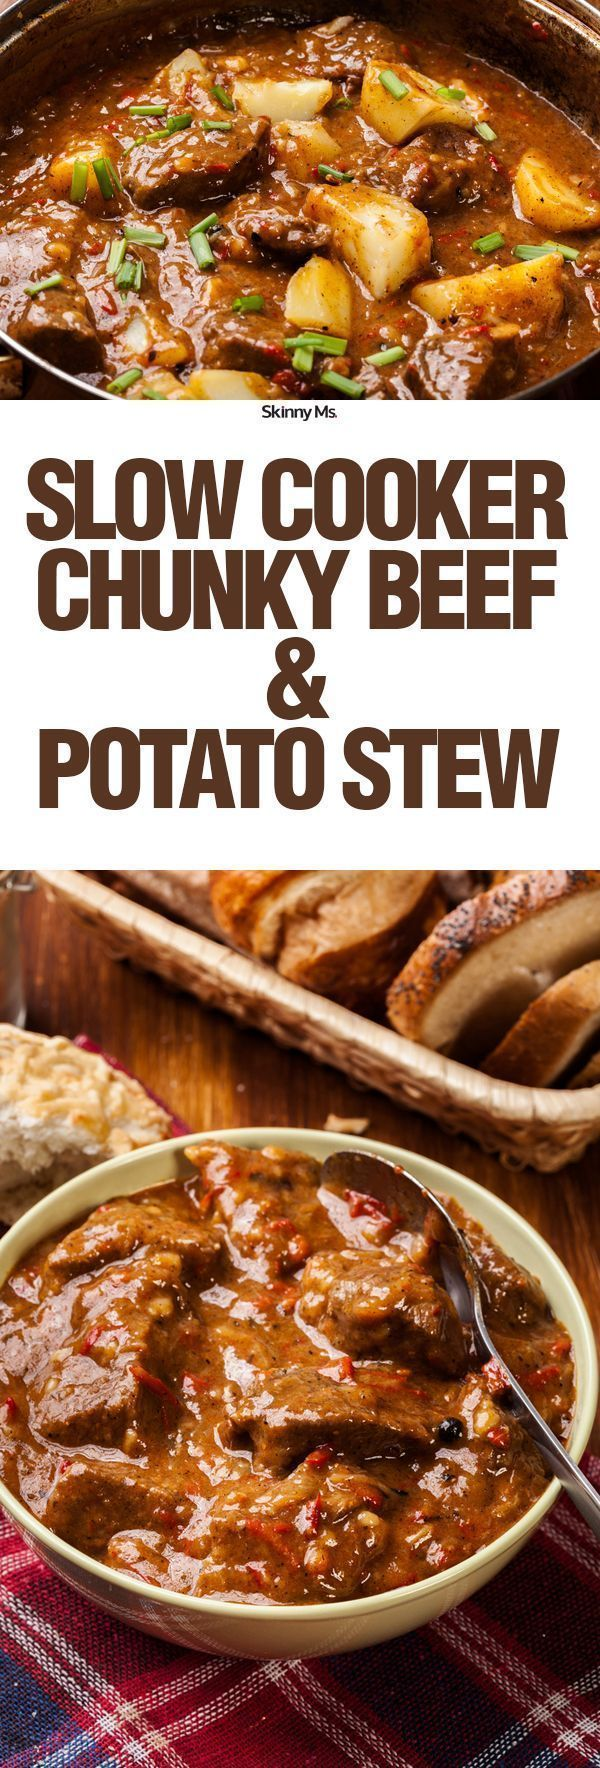 This Slow Cooker Chunky Beef & Potato Stew is a hearty, protein-packed dish…